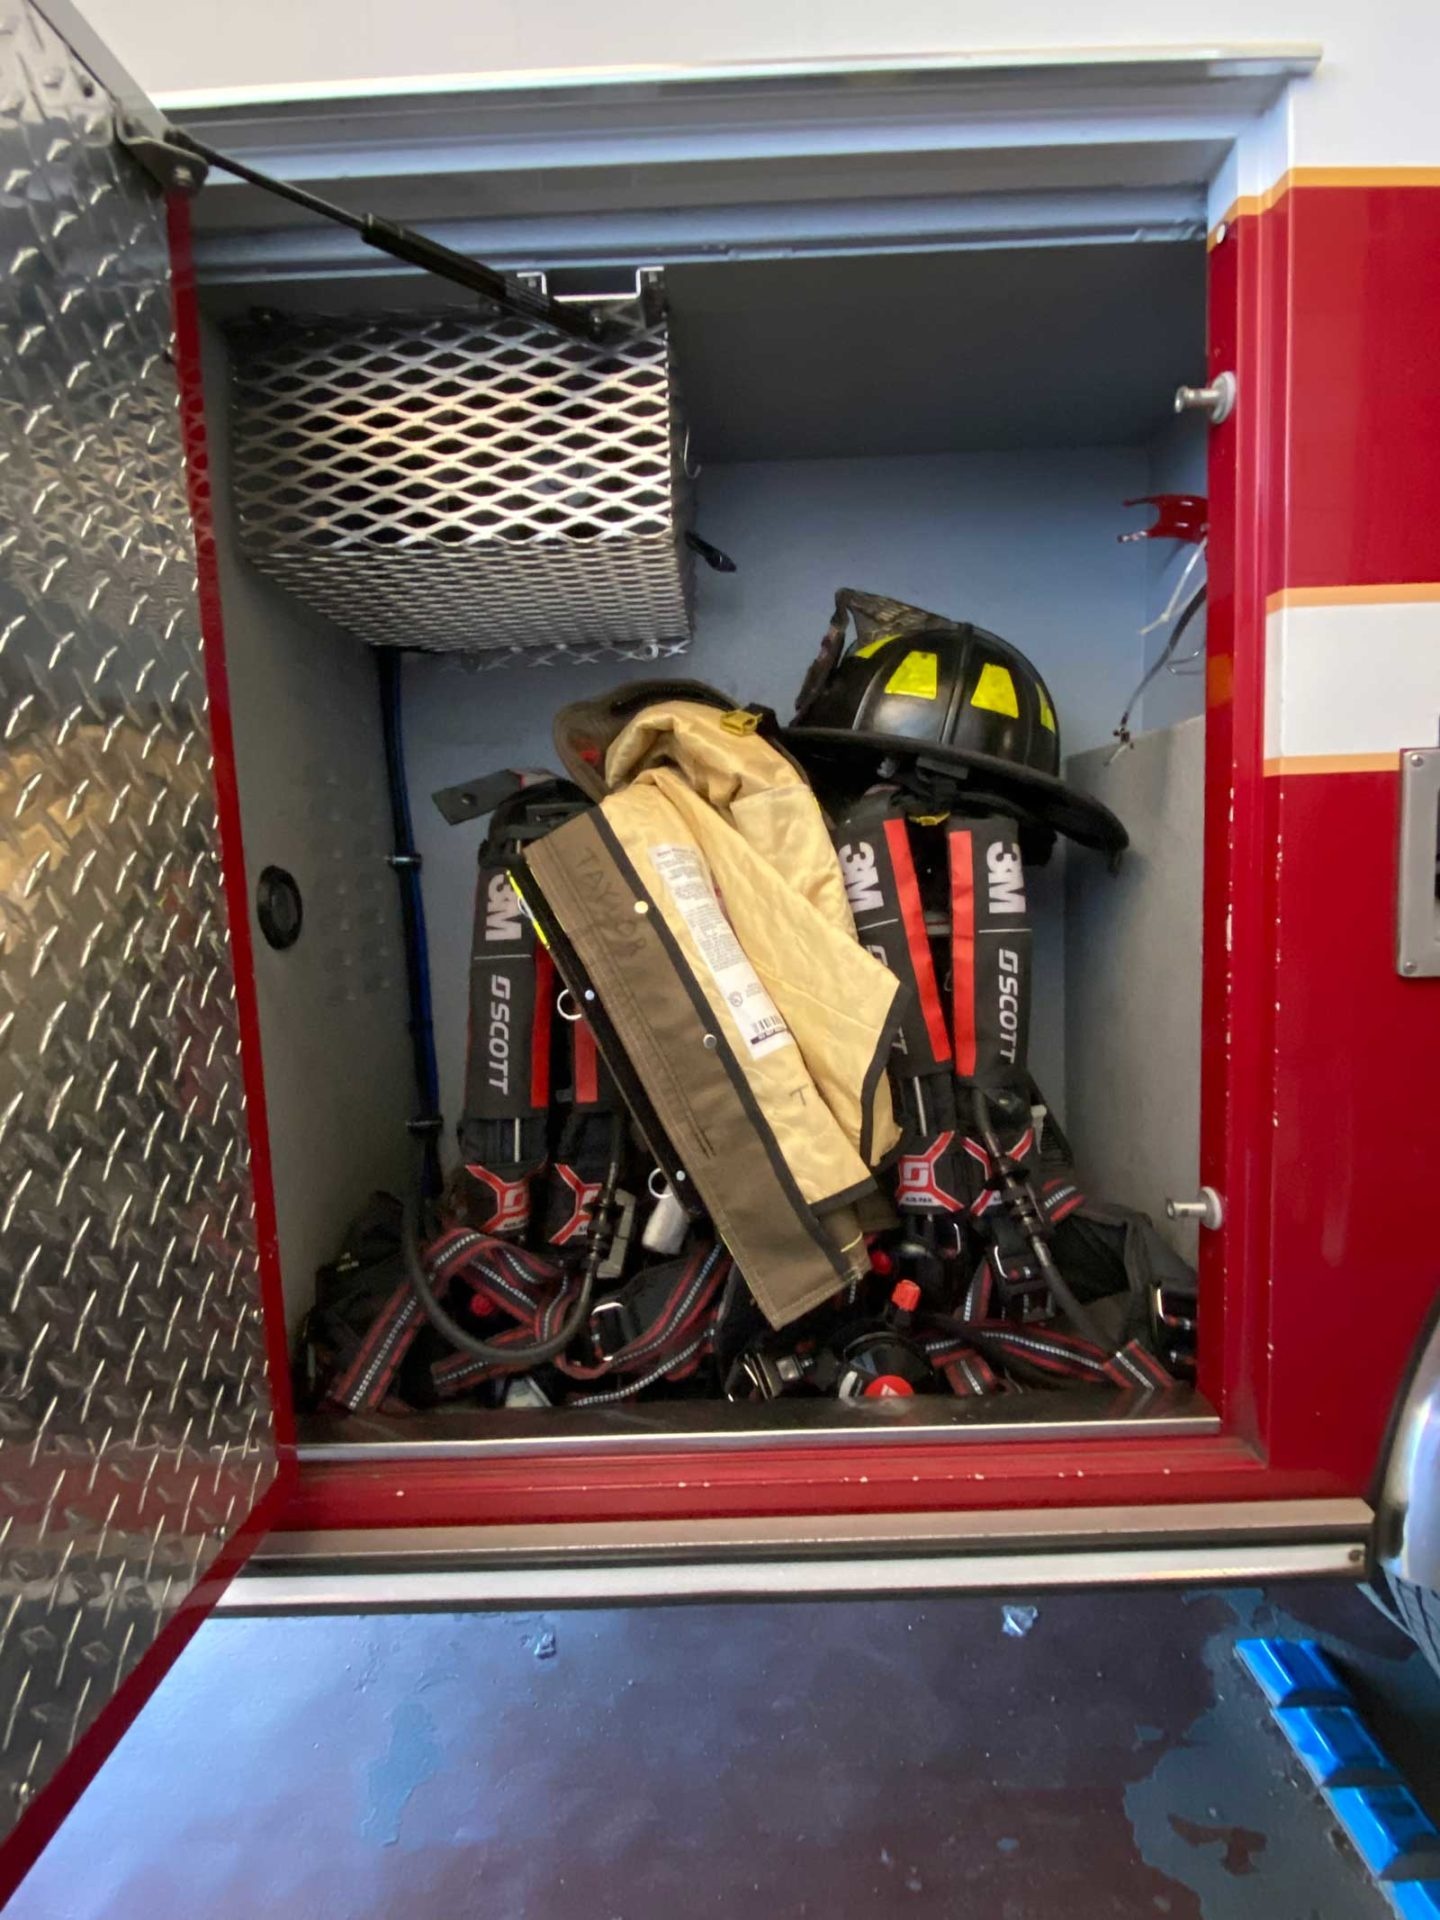 Firefighter gear in a compartment on a fire truck